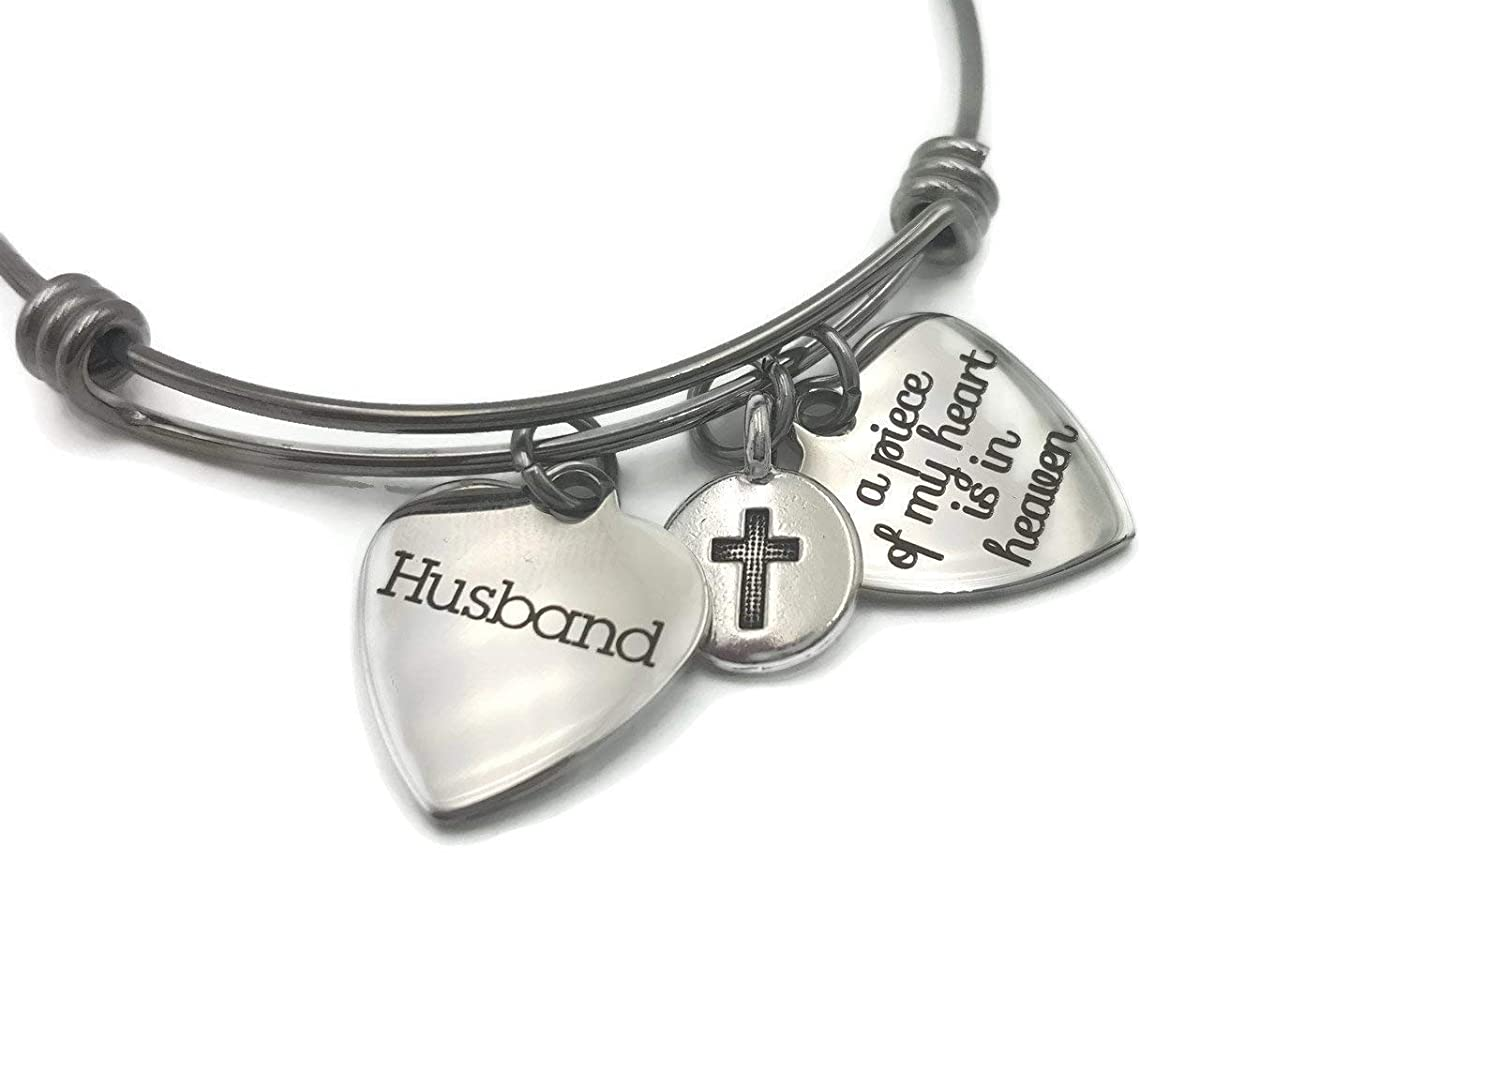 Memorial Gift In Memory of Husband A Heart price Max 62% OFF He is My in Piece